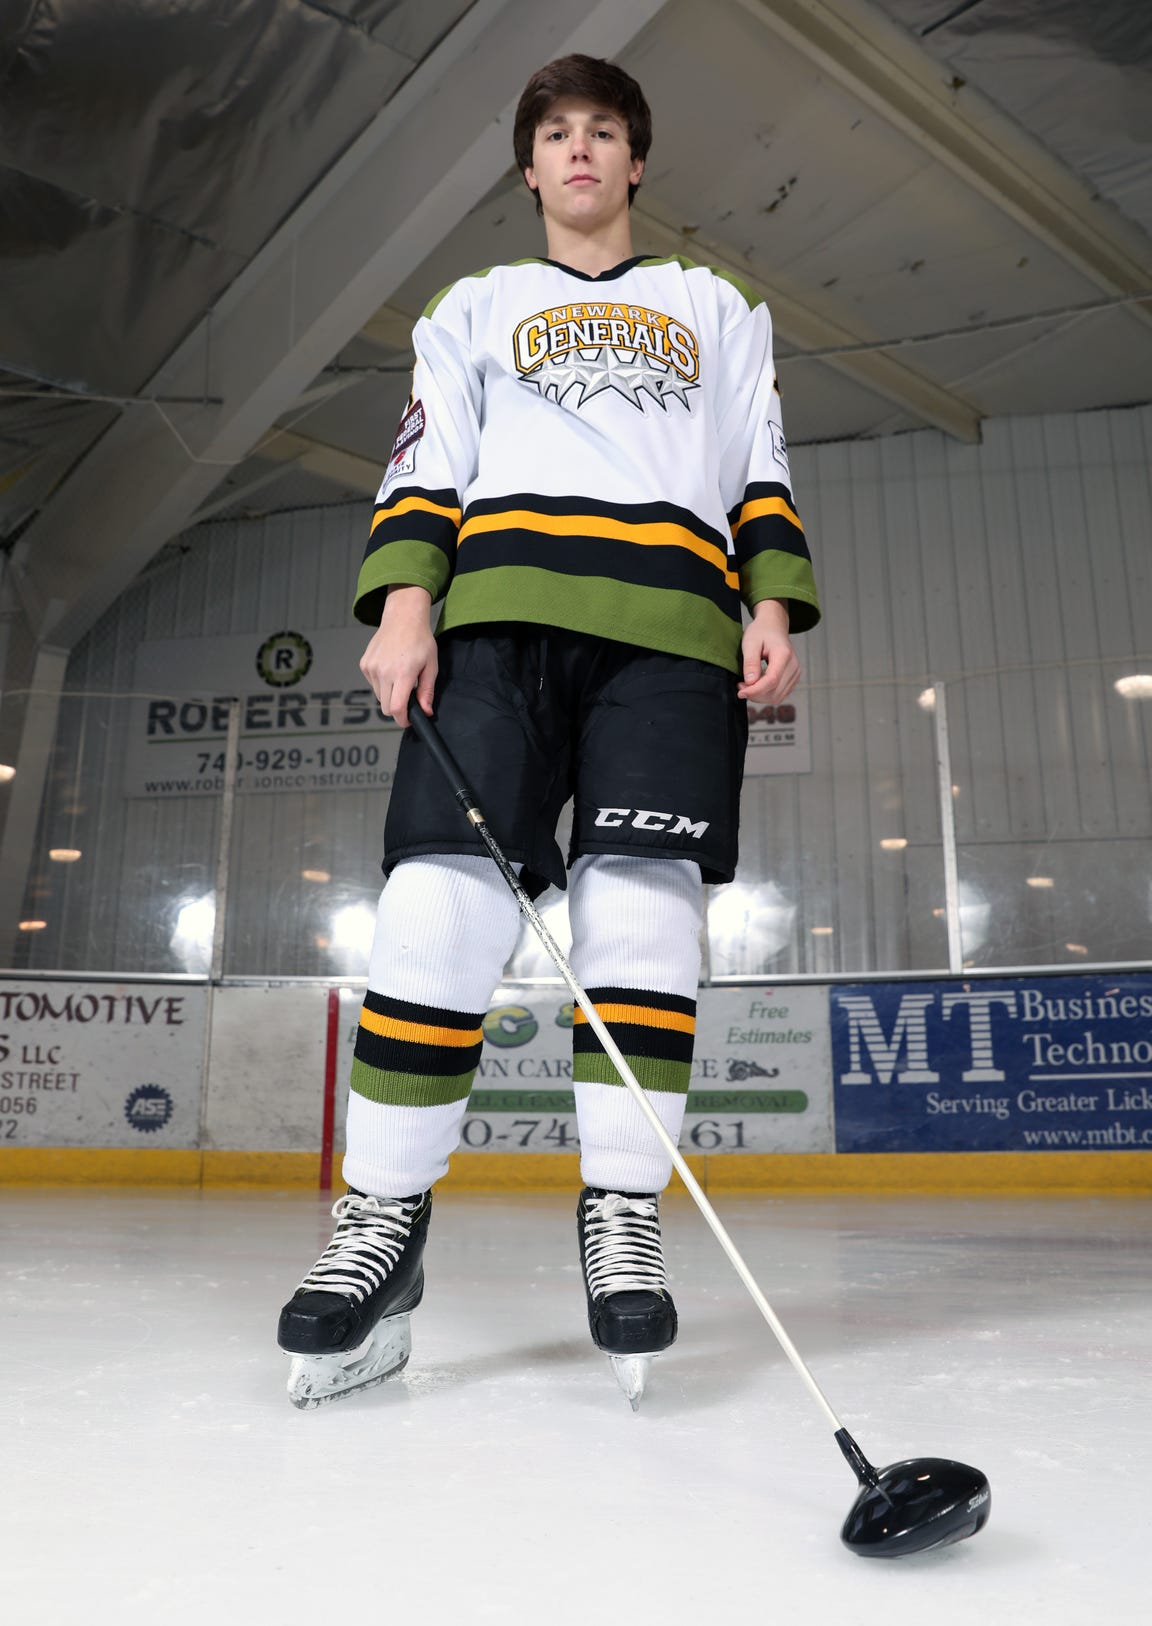 Tri-Valley High School golfer Drew Johnson also plays hockey for the Newark Generals.